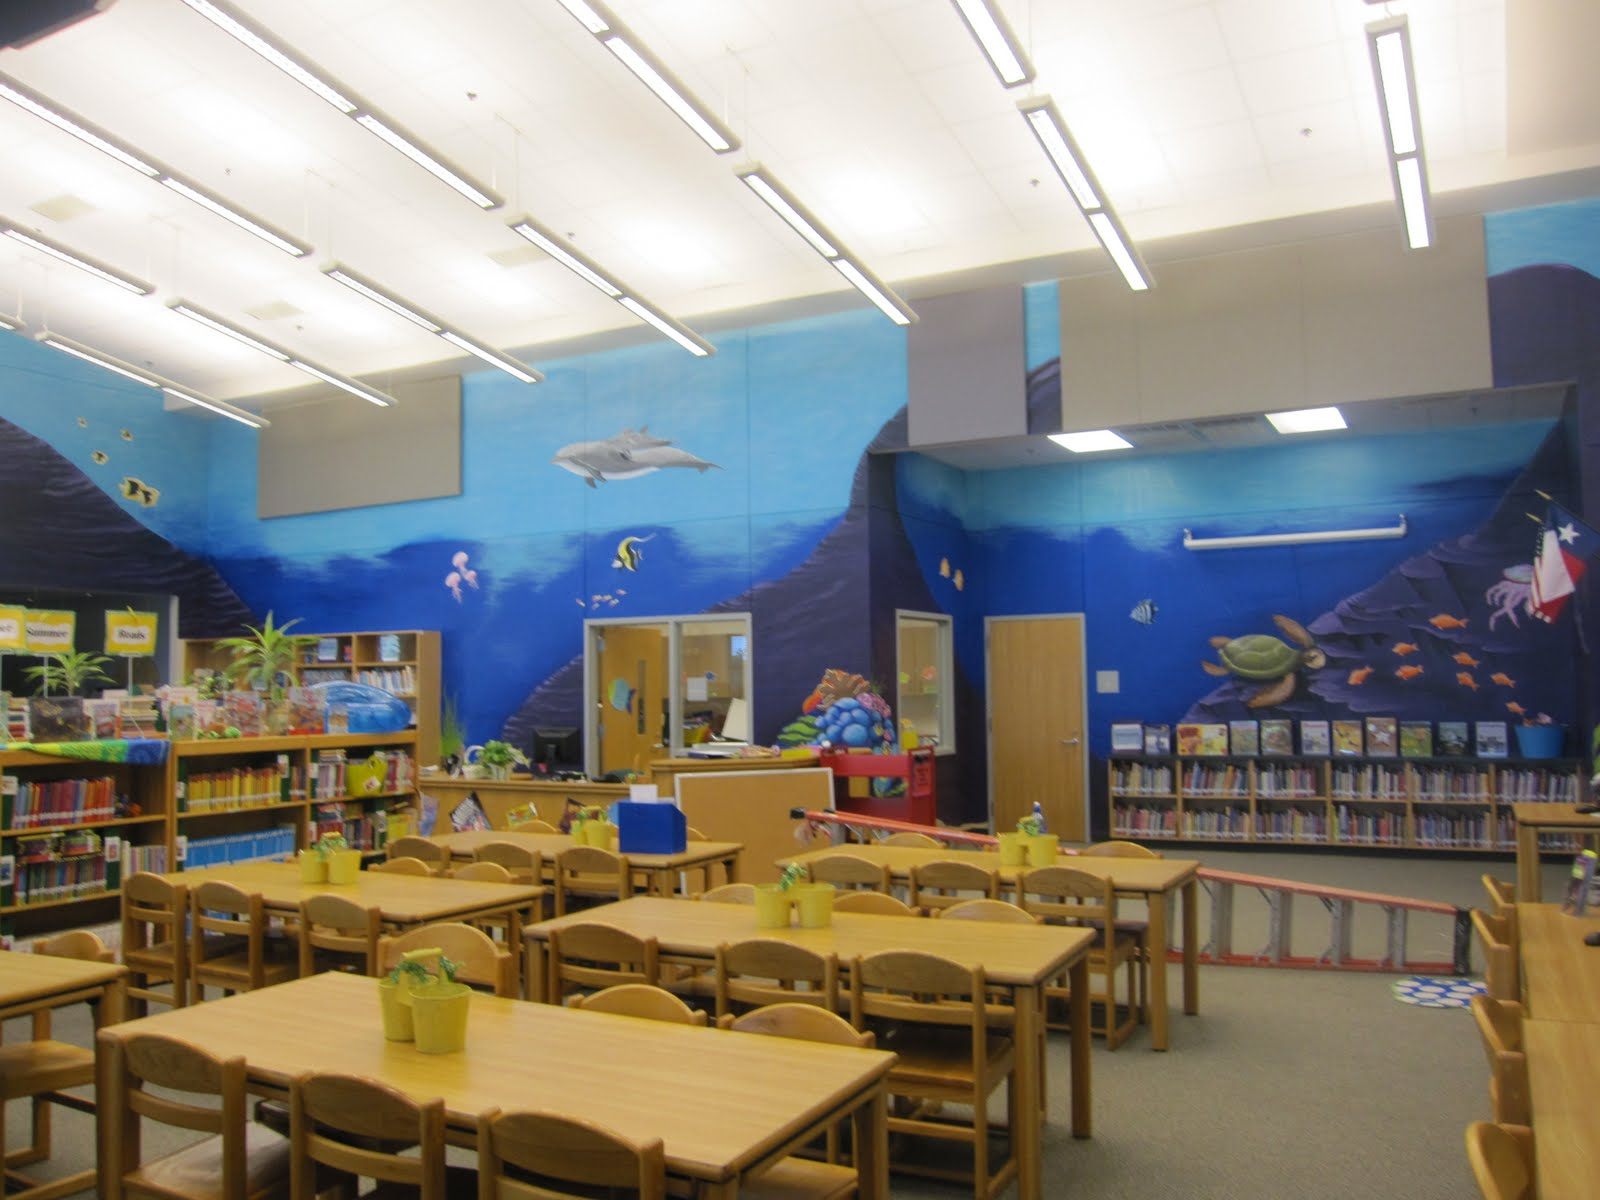 Ashley williams finding nemo mural at school library for Elementary school mural